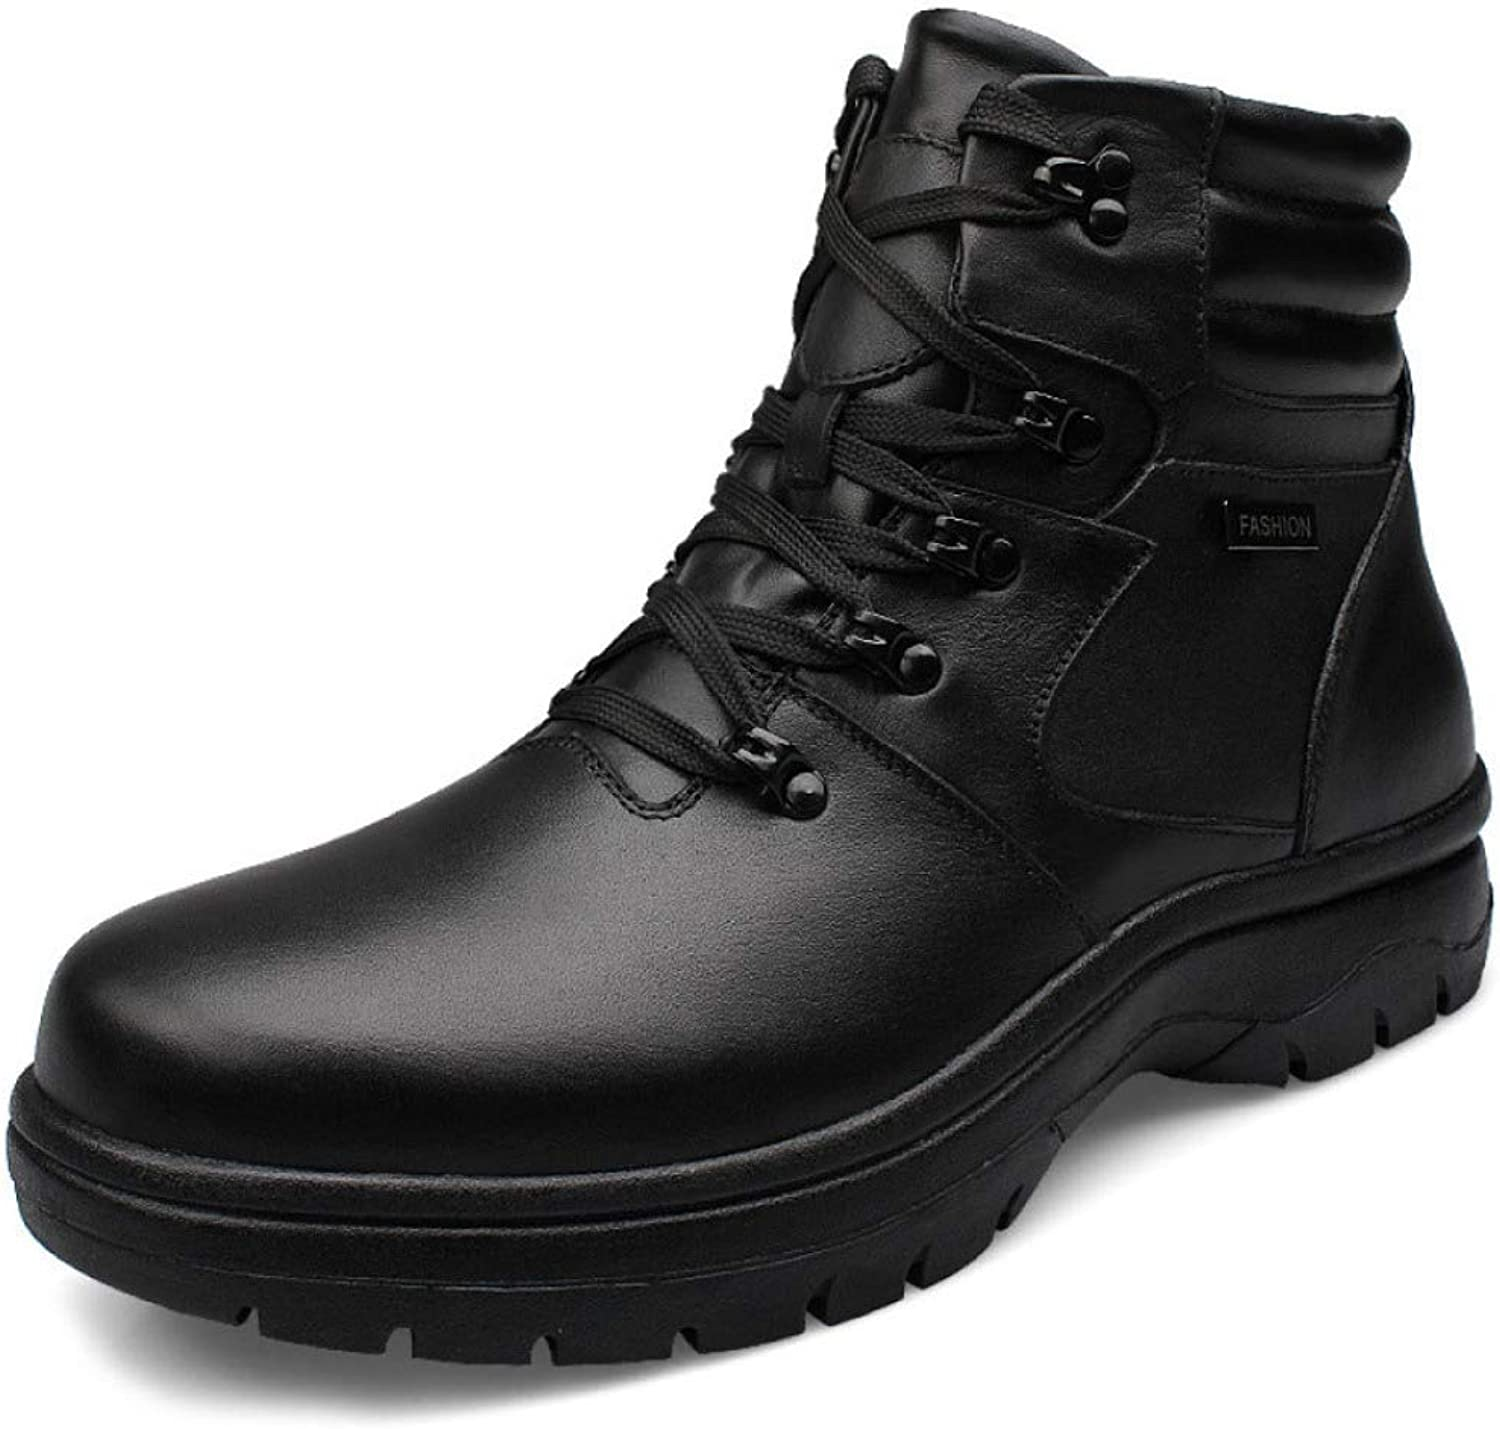 LIJUN Special Force Tactical Desert Combat Boots Outdoor shoes Snow Boots Men Quality Military Leather Boots